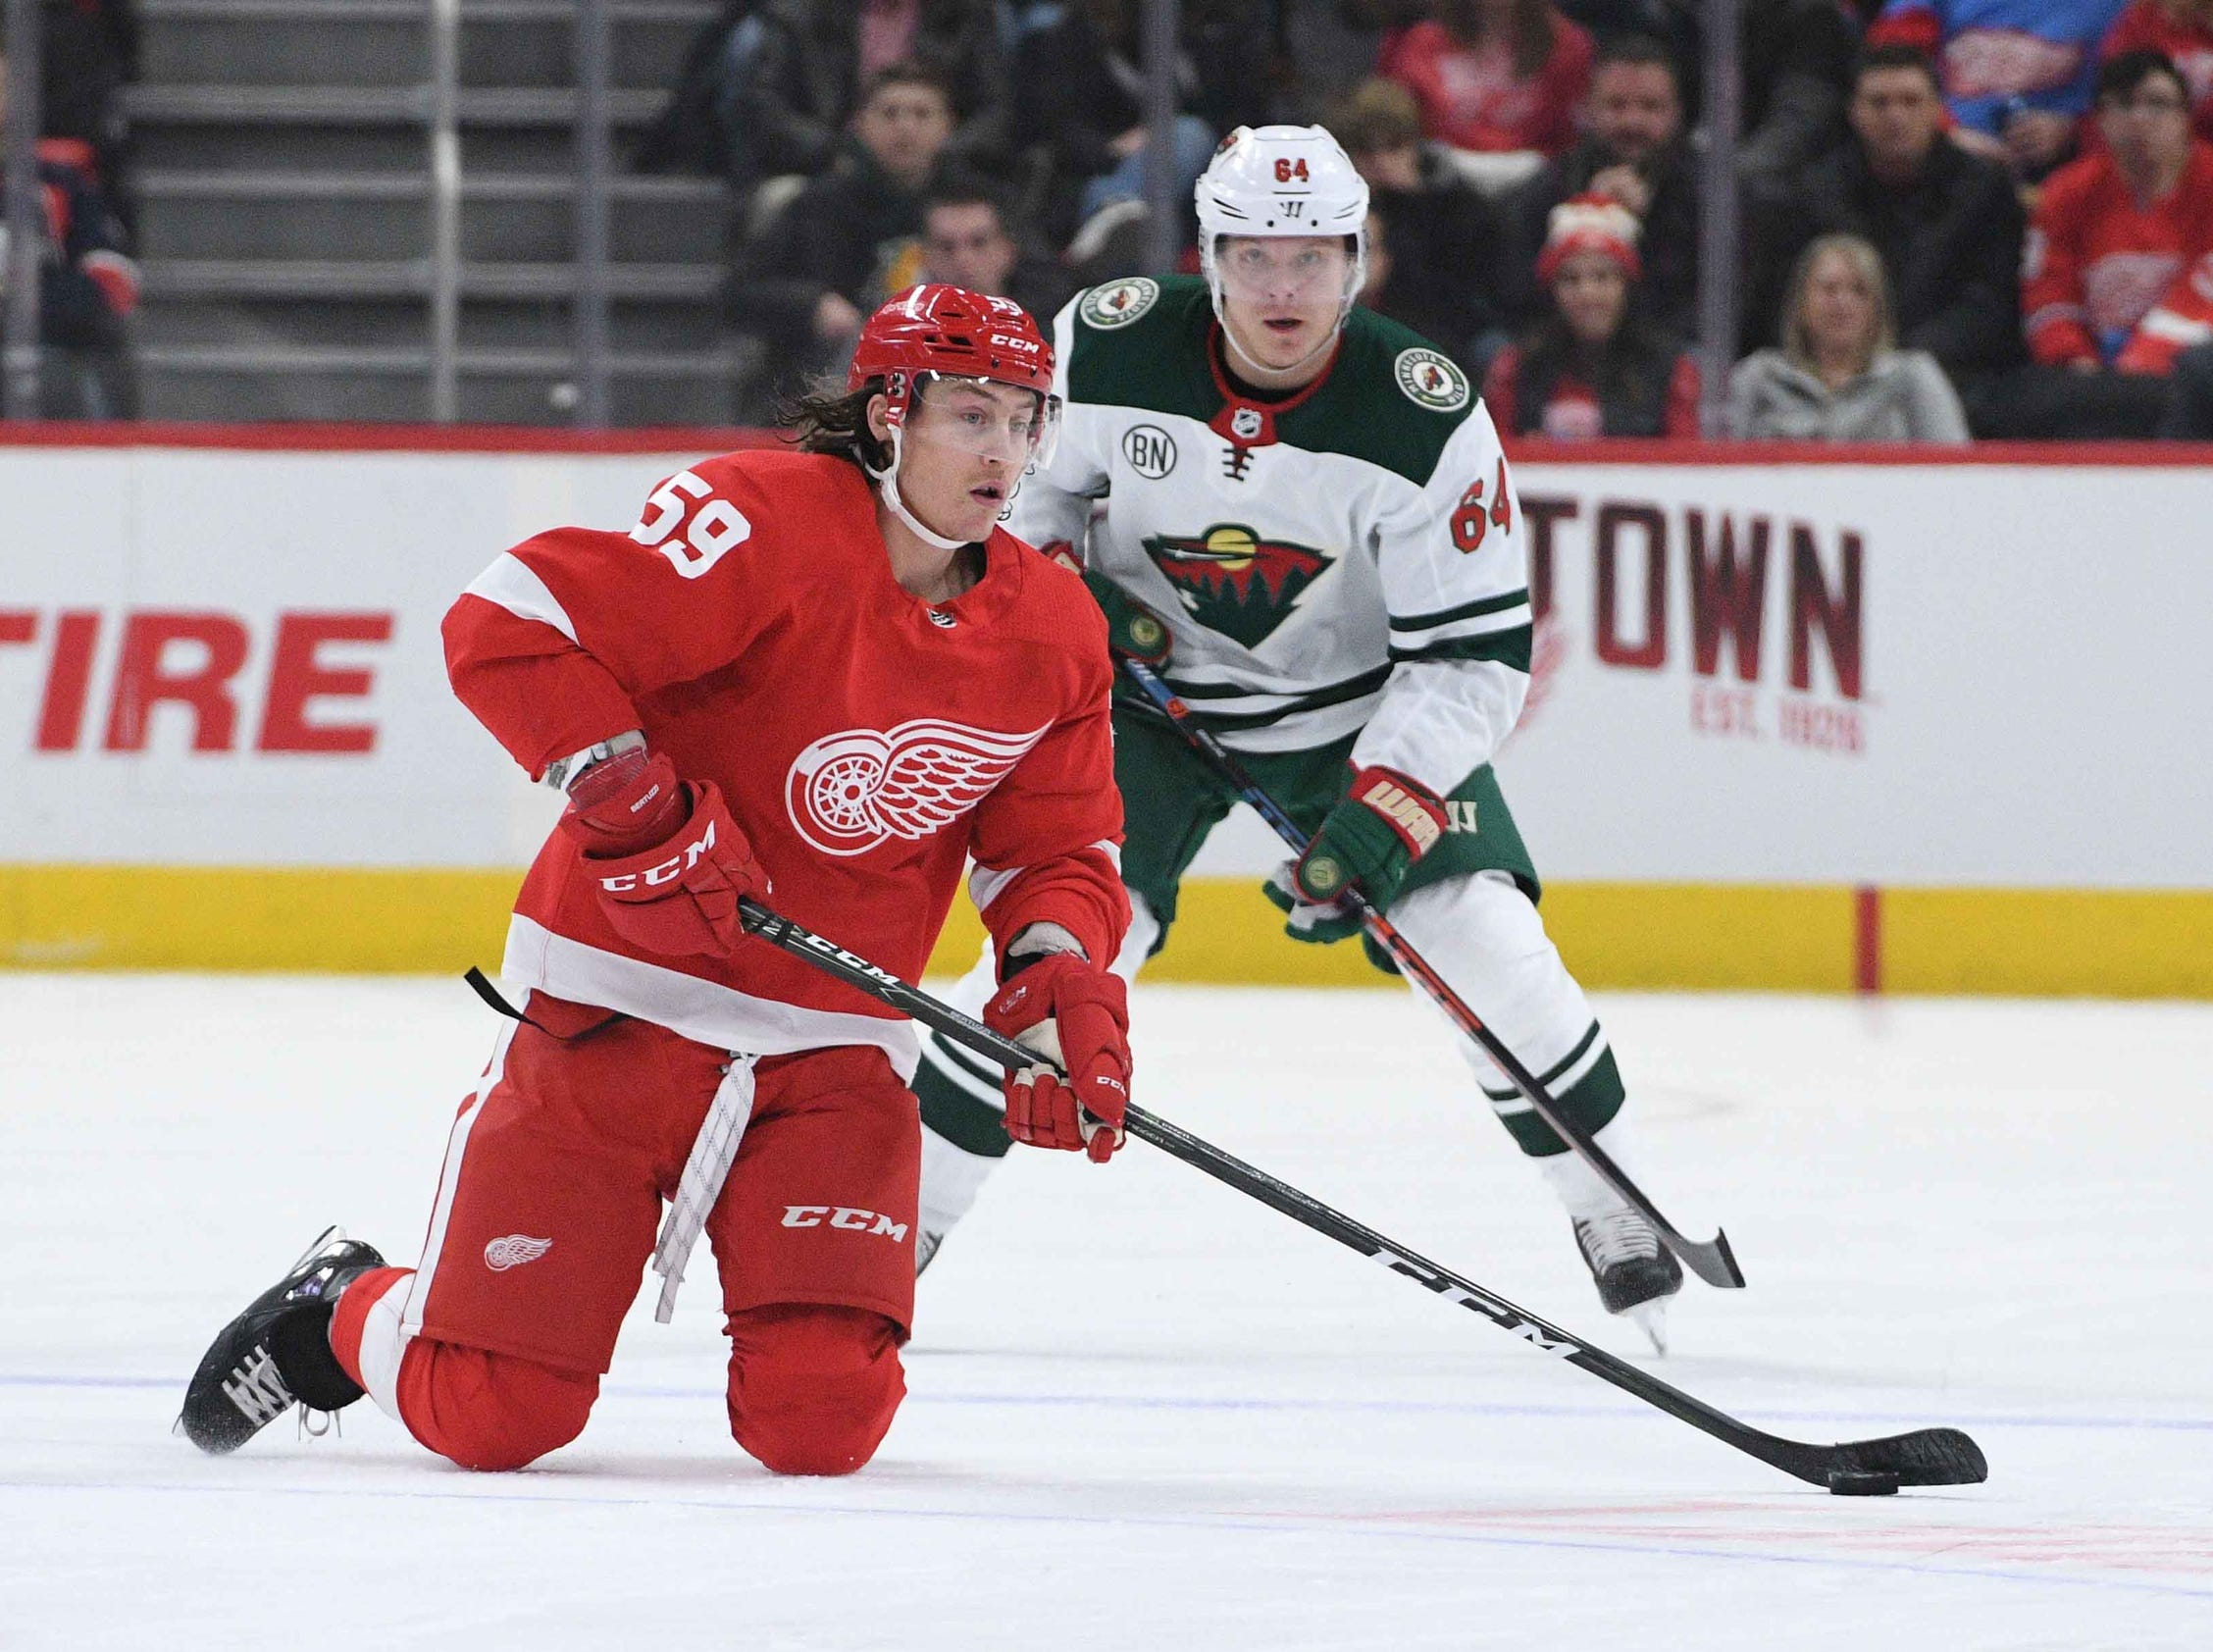 Detroit Red Wings left wing Tyler Bertuzzi (59) looks to pass the puck as Minnesota Wild right wing Mikael Granlund (64) defends during the first period at Little Caesars Arena on Feb. 22, 2019.